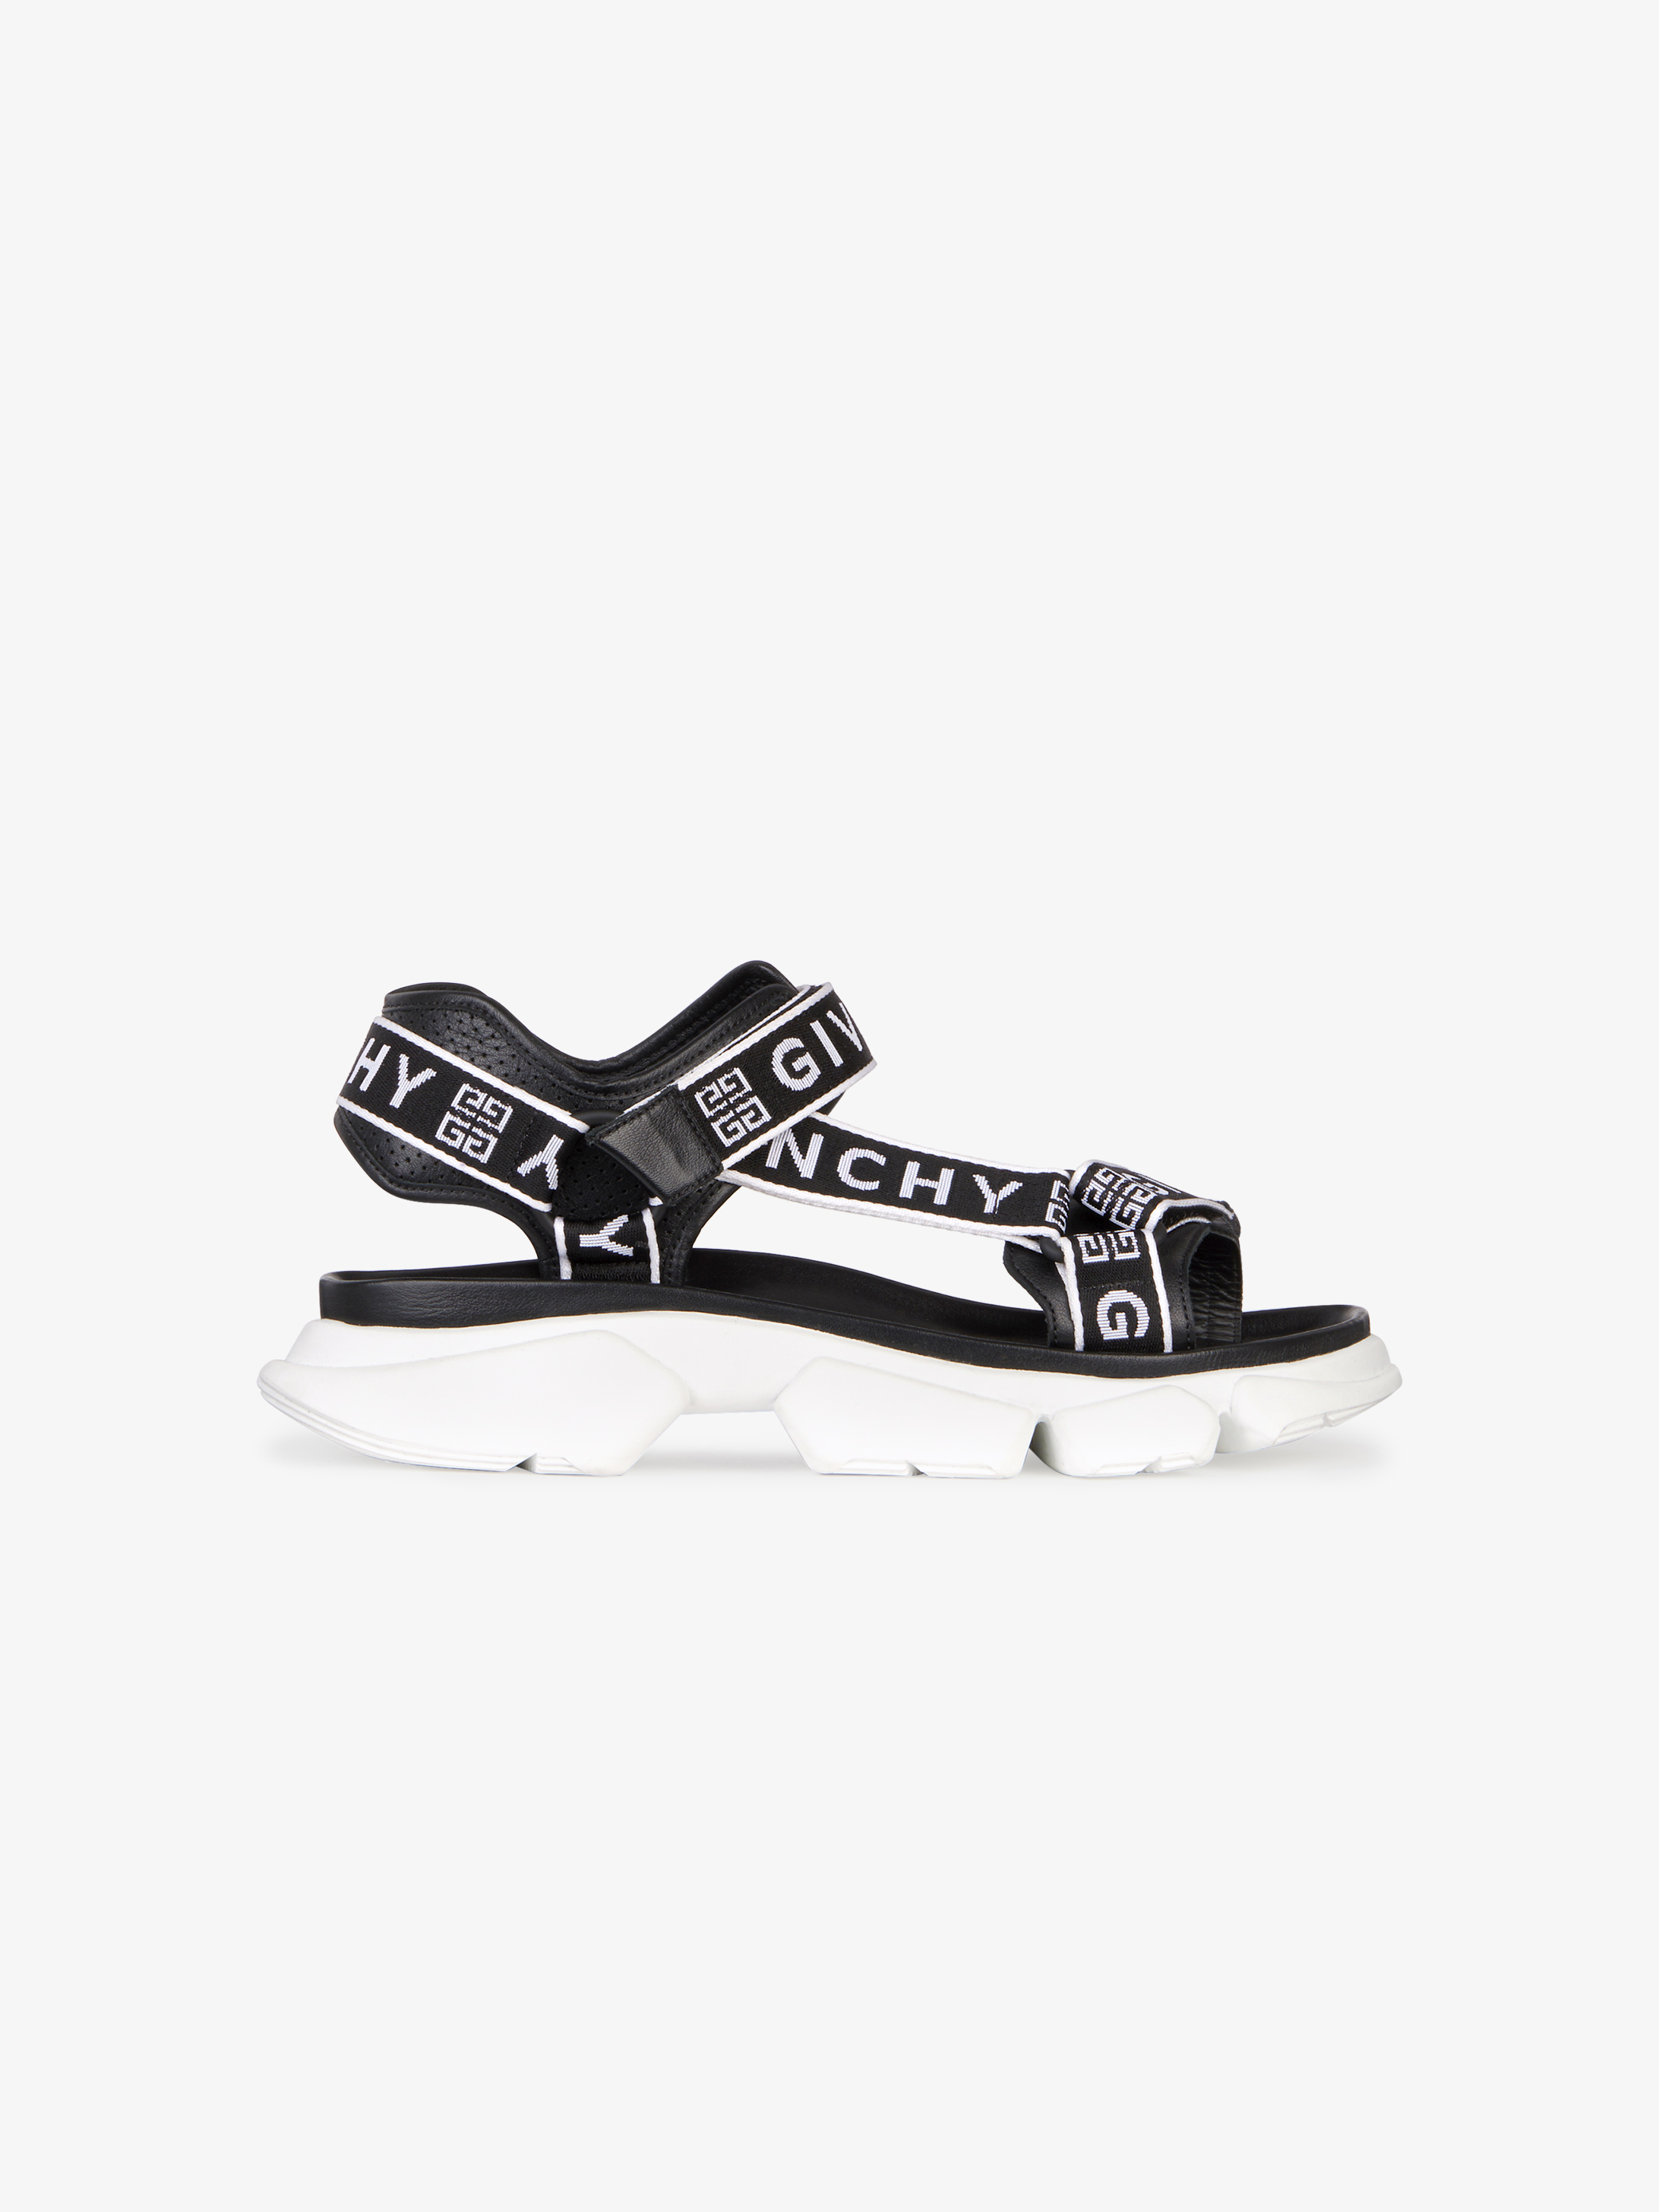 JAW sandals in leather with GIVENCHY 4G webbing